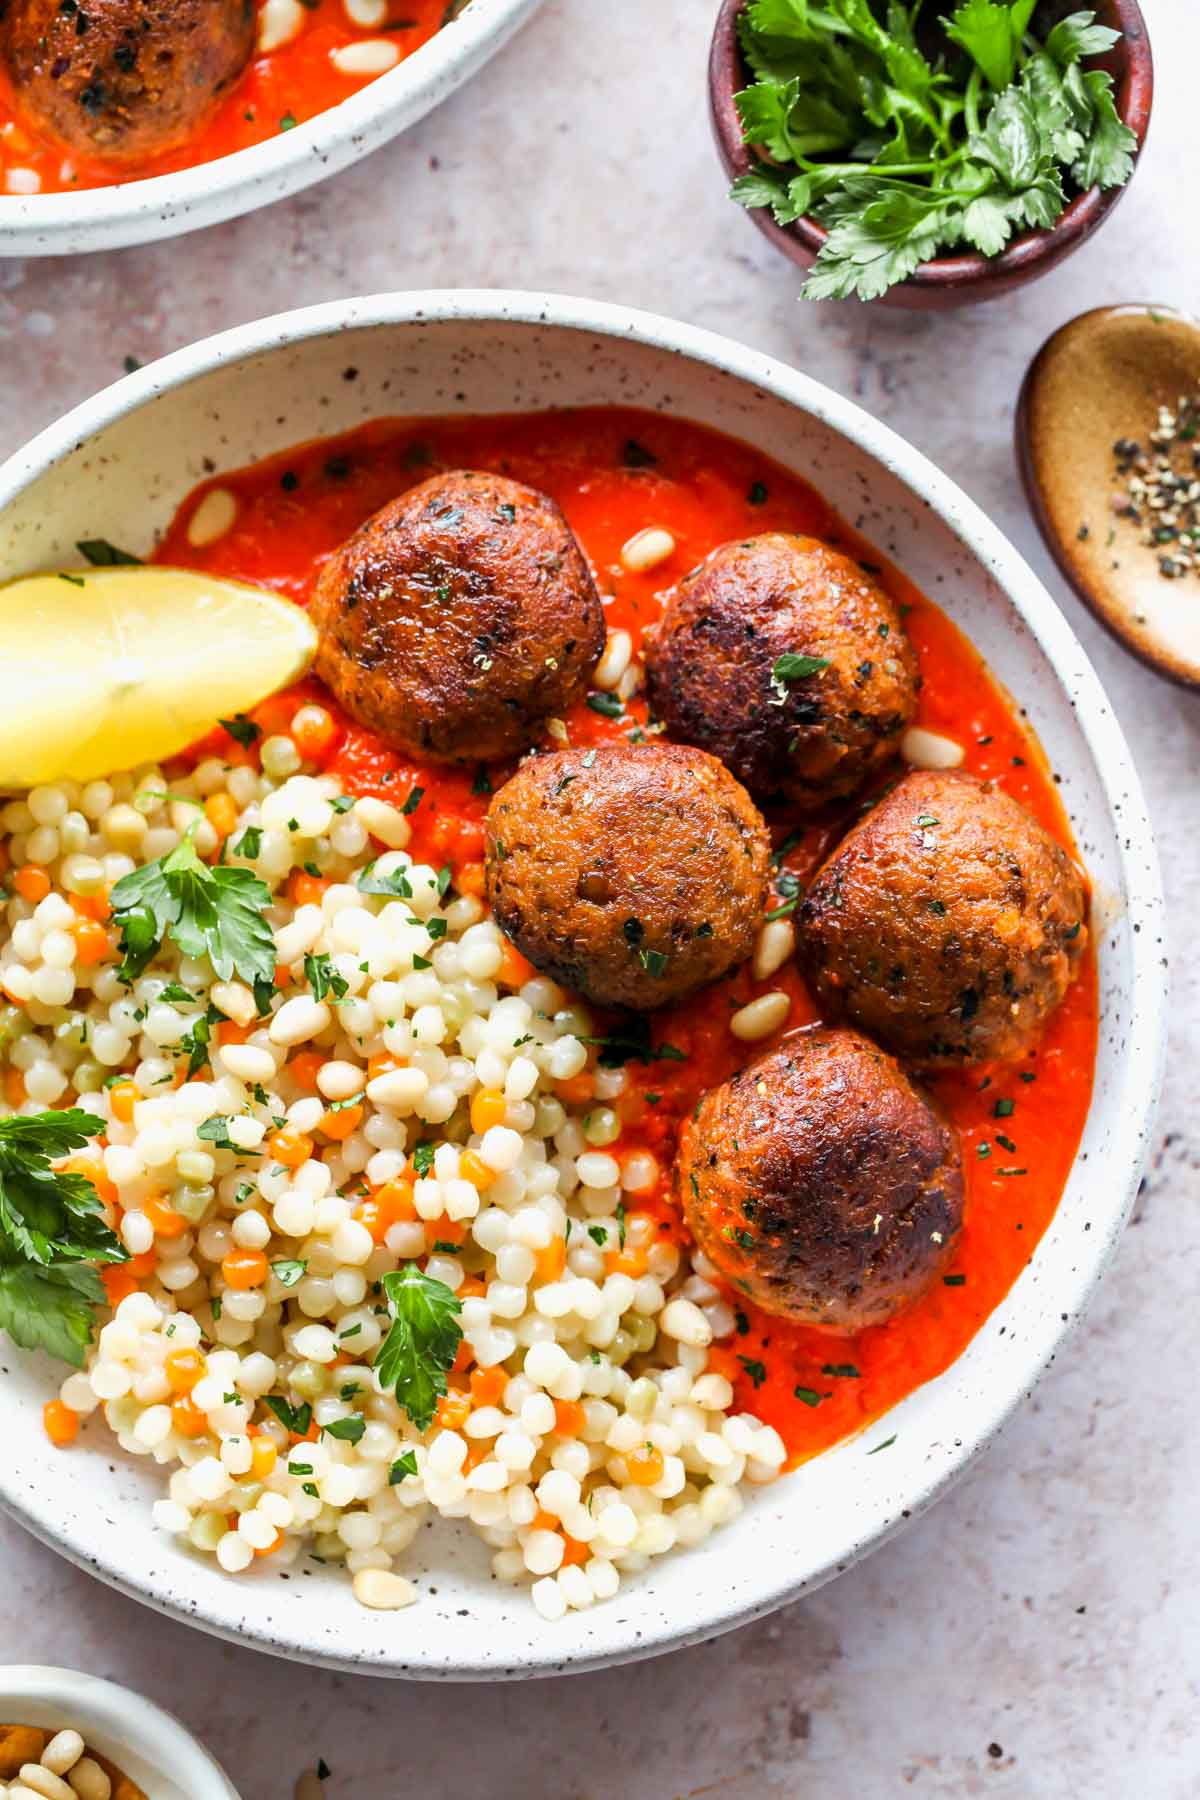 Lentil meatballs in roasted red pepper sauce with pearl couscous